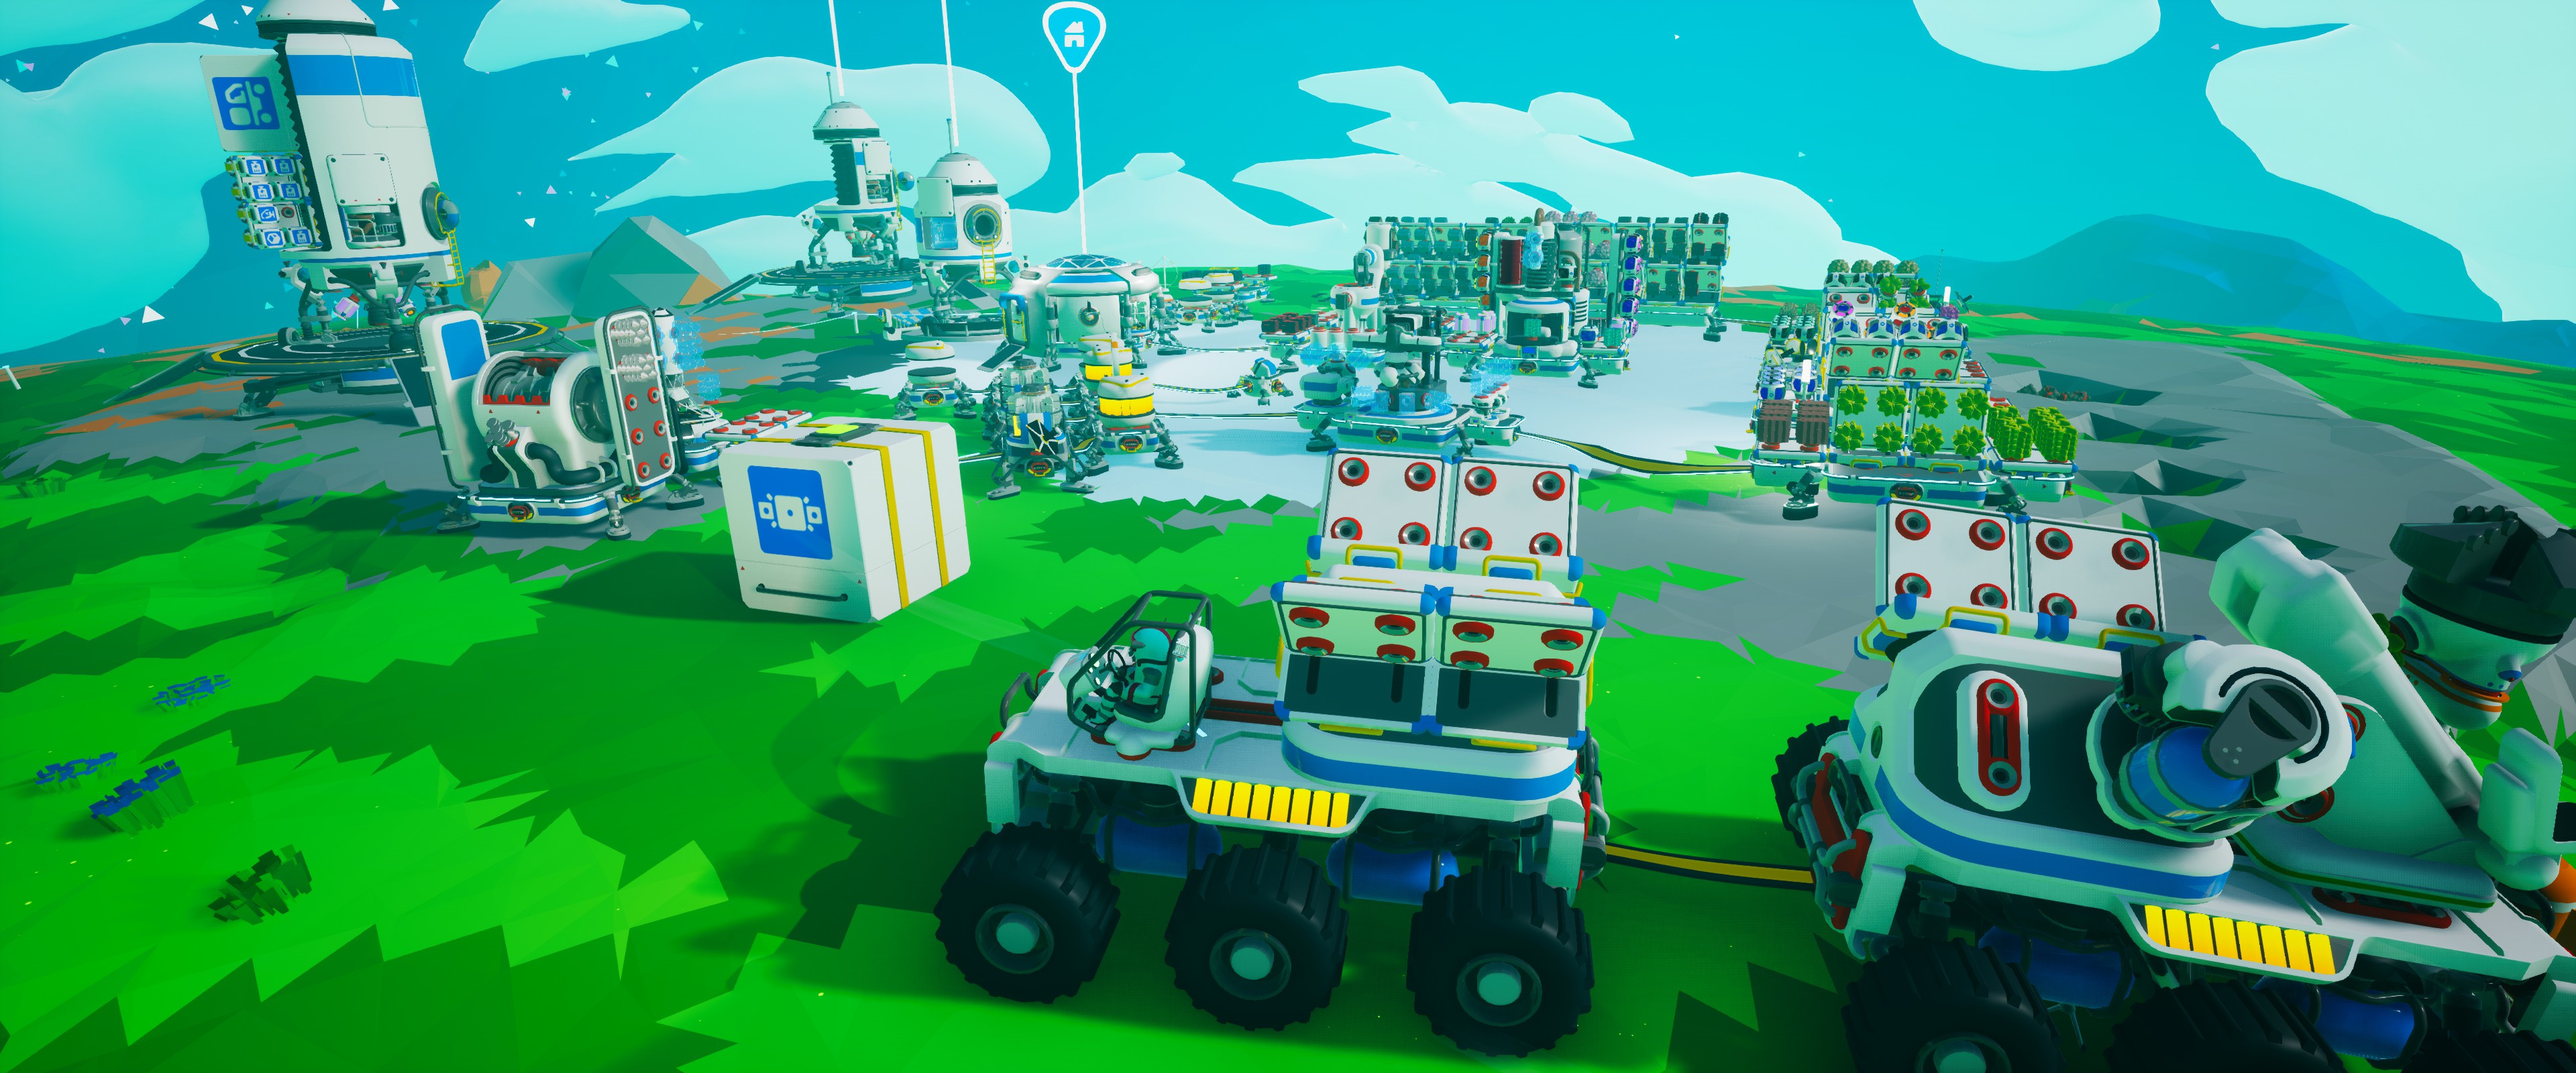 Astroneer - survive, explore and build in a low-poly galaxy